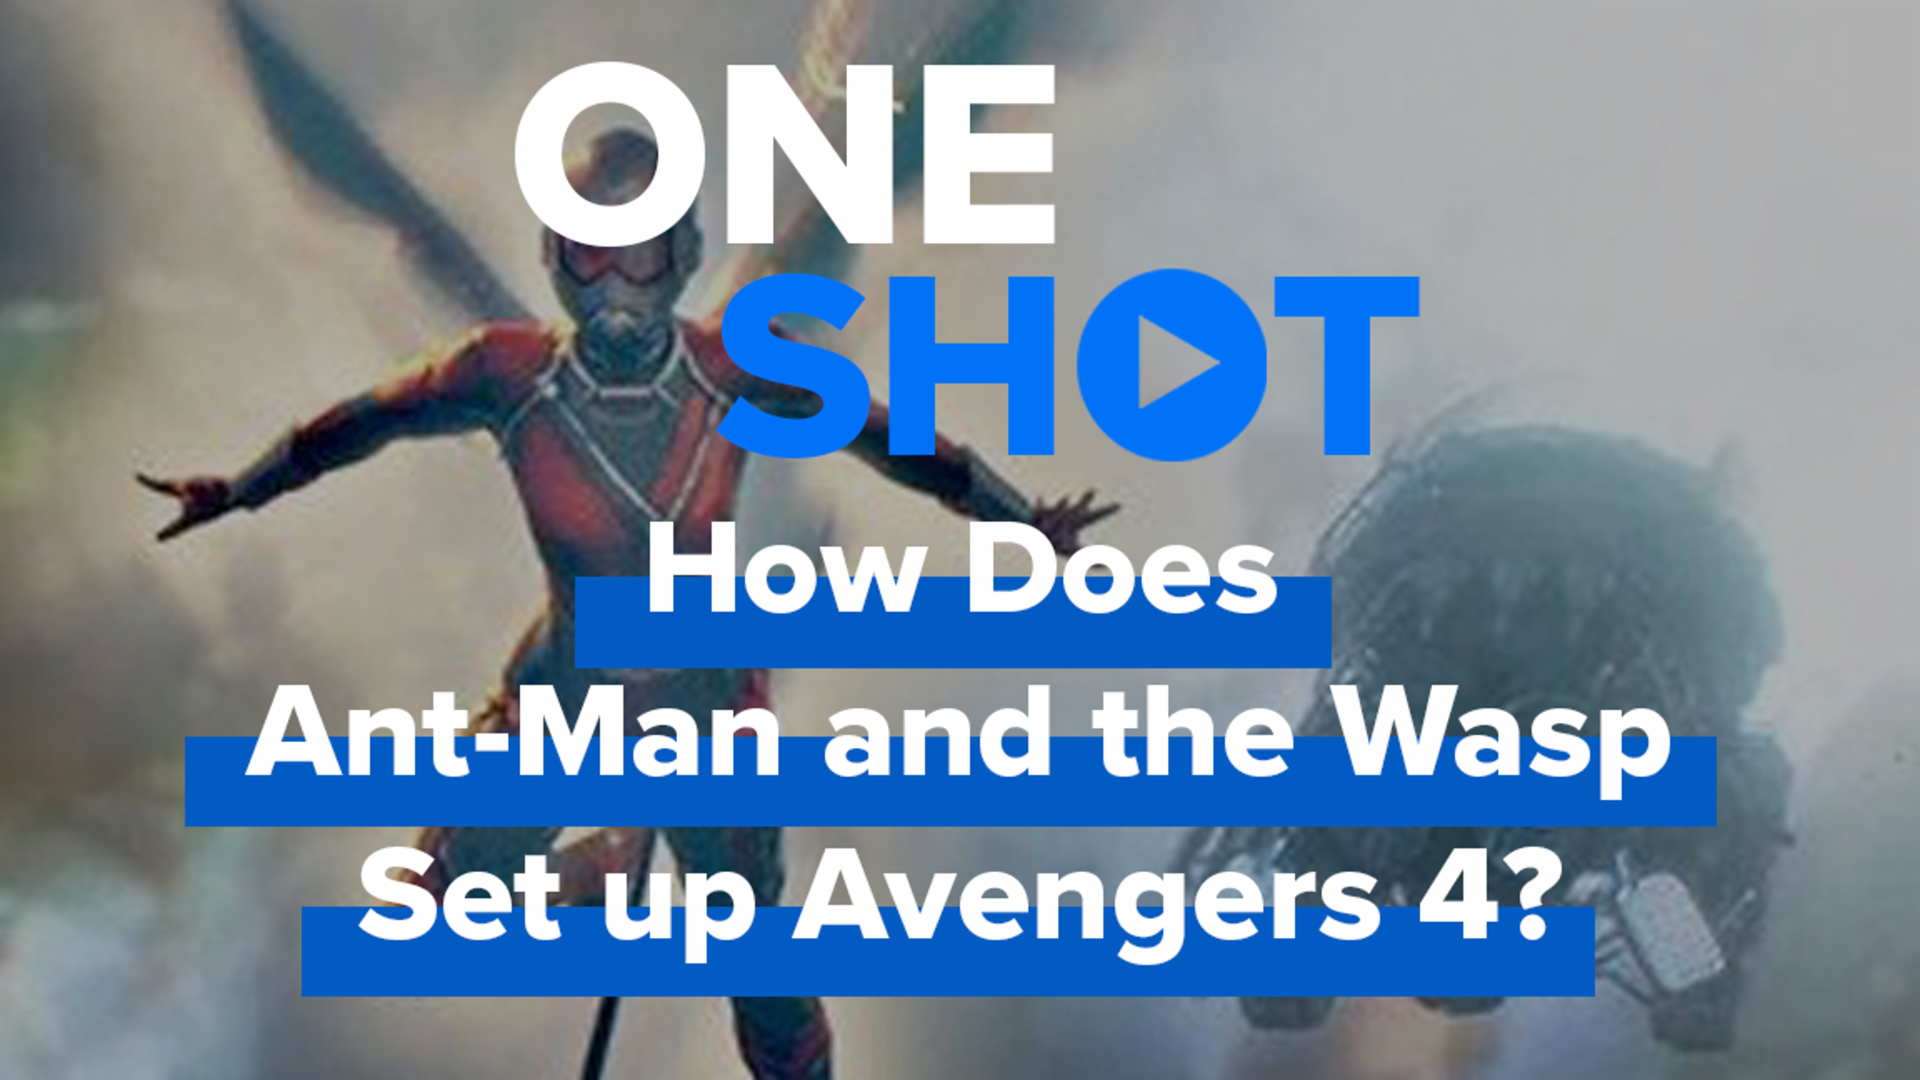 How Does Ant-Man and the Wasp Set up Avengers 4?! - One Shot screen capture